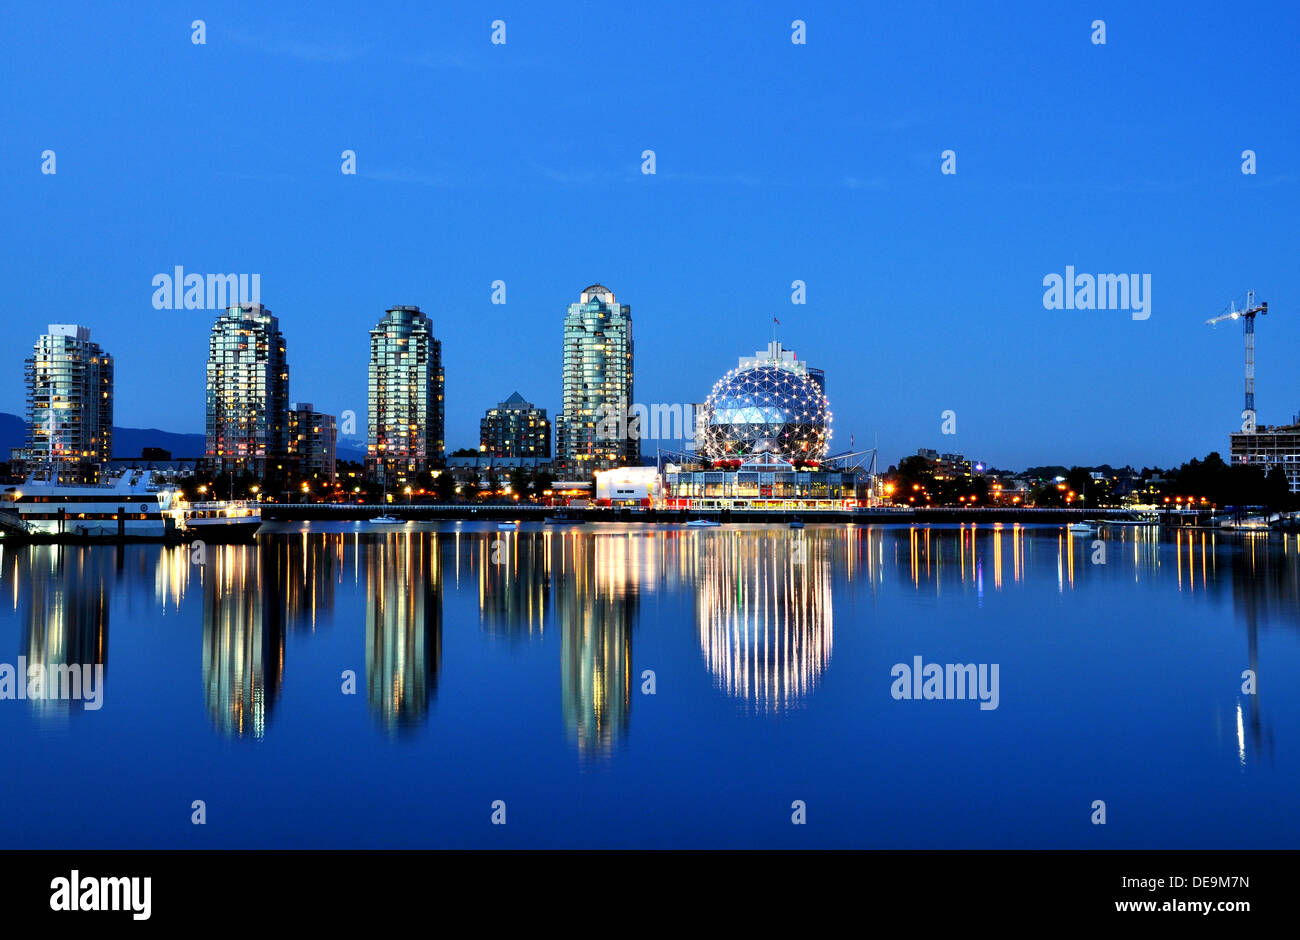 Blue hour at False Creek, Vancouver,BC, Canada - Stock Image